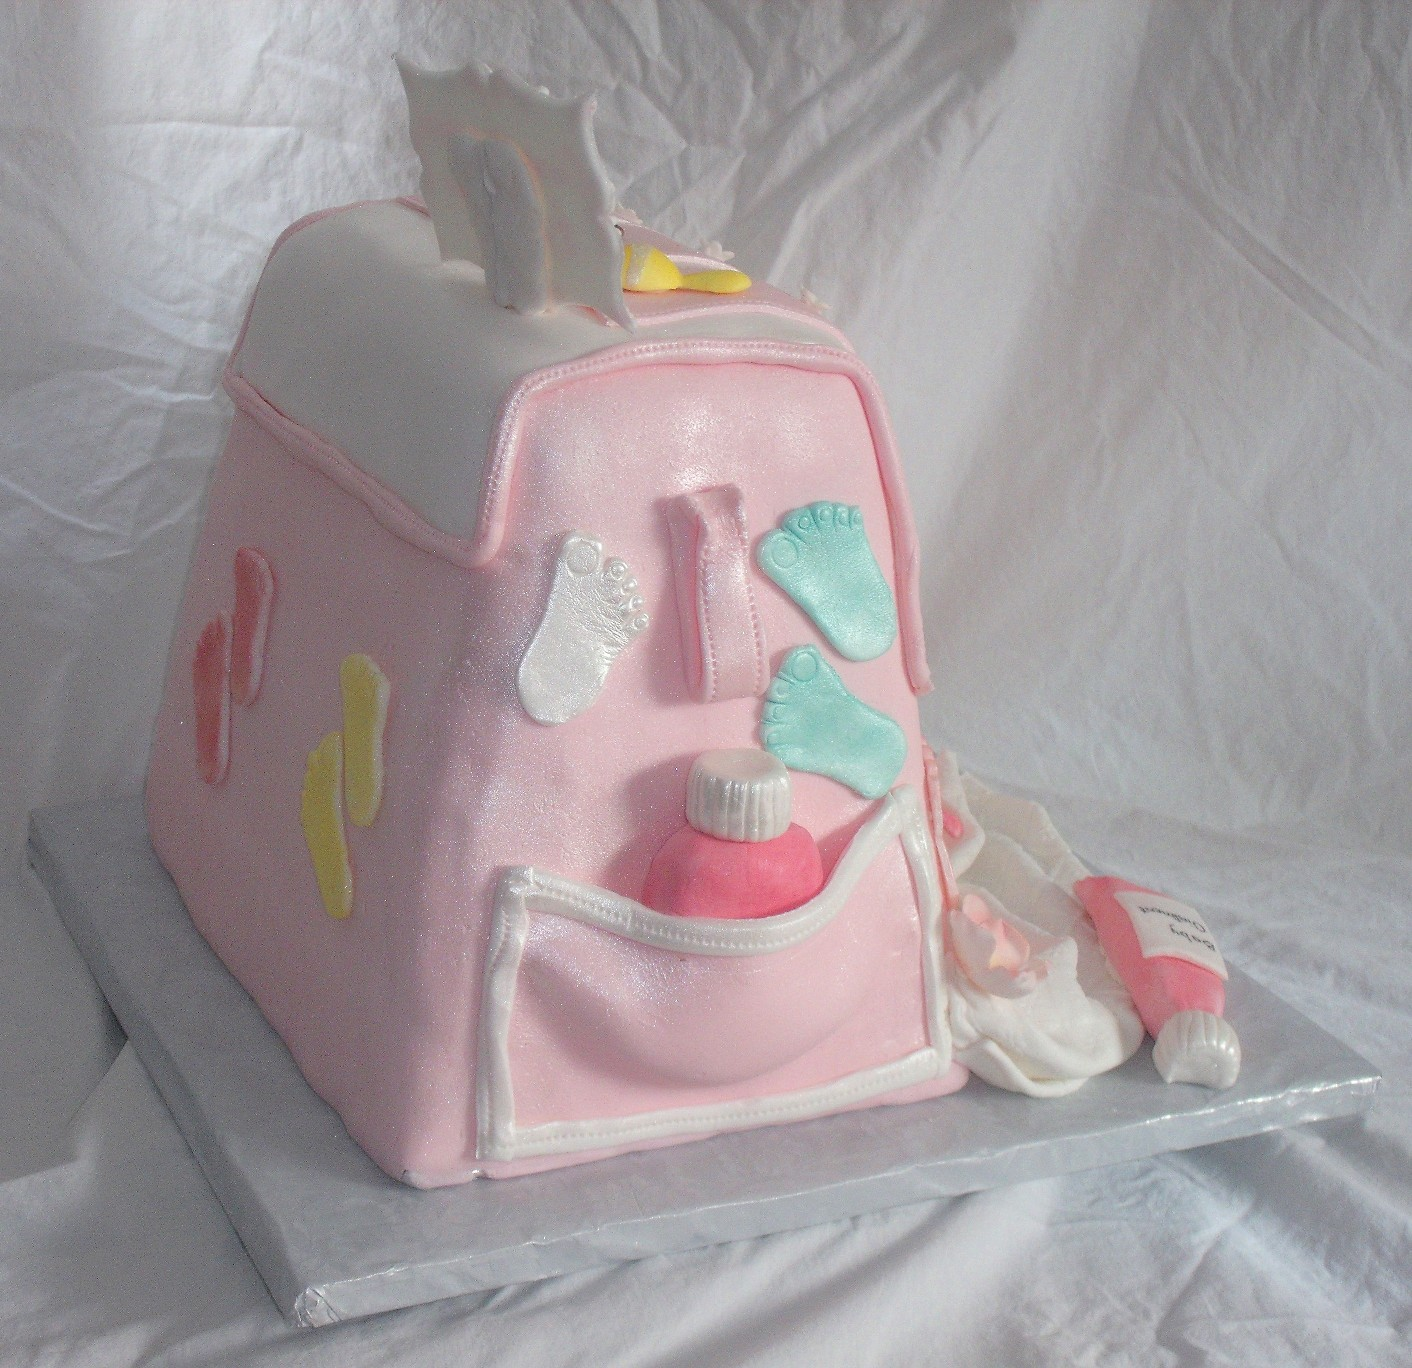 Baby Diaper Bag Cake For Baby Shower With Edible Gumpaste ...